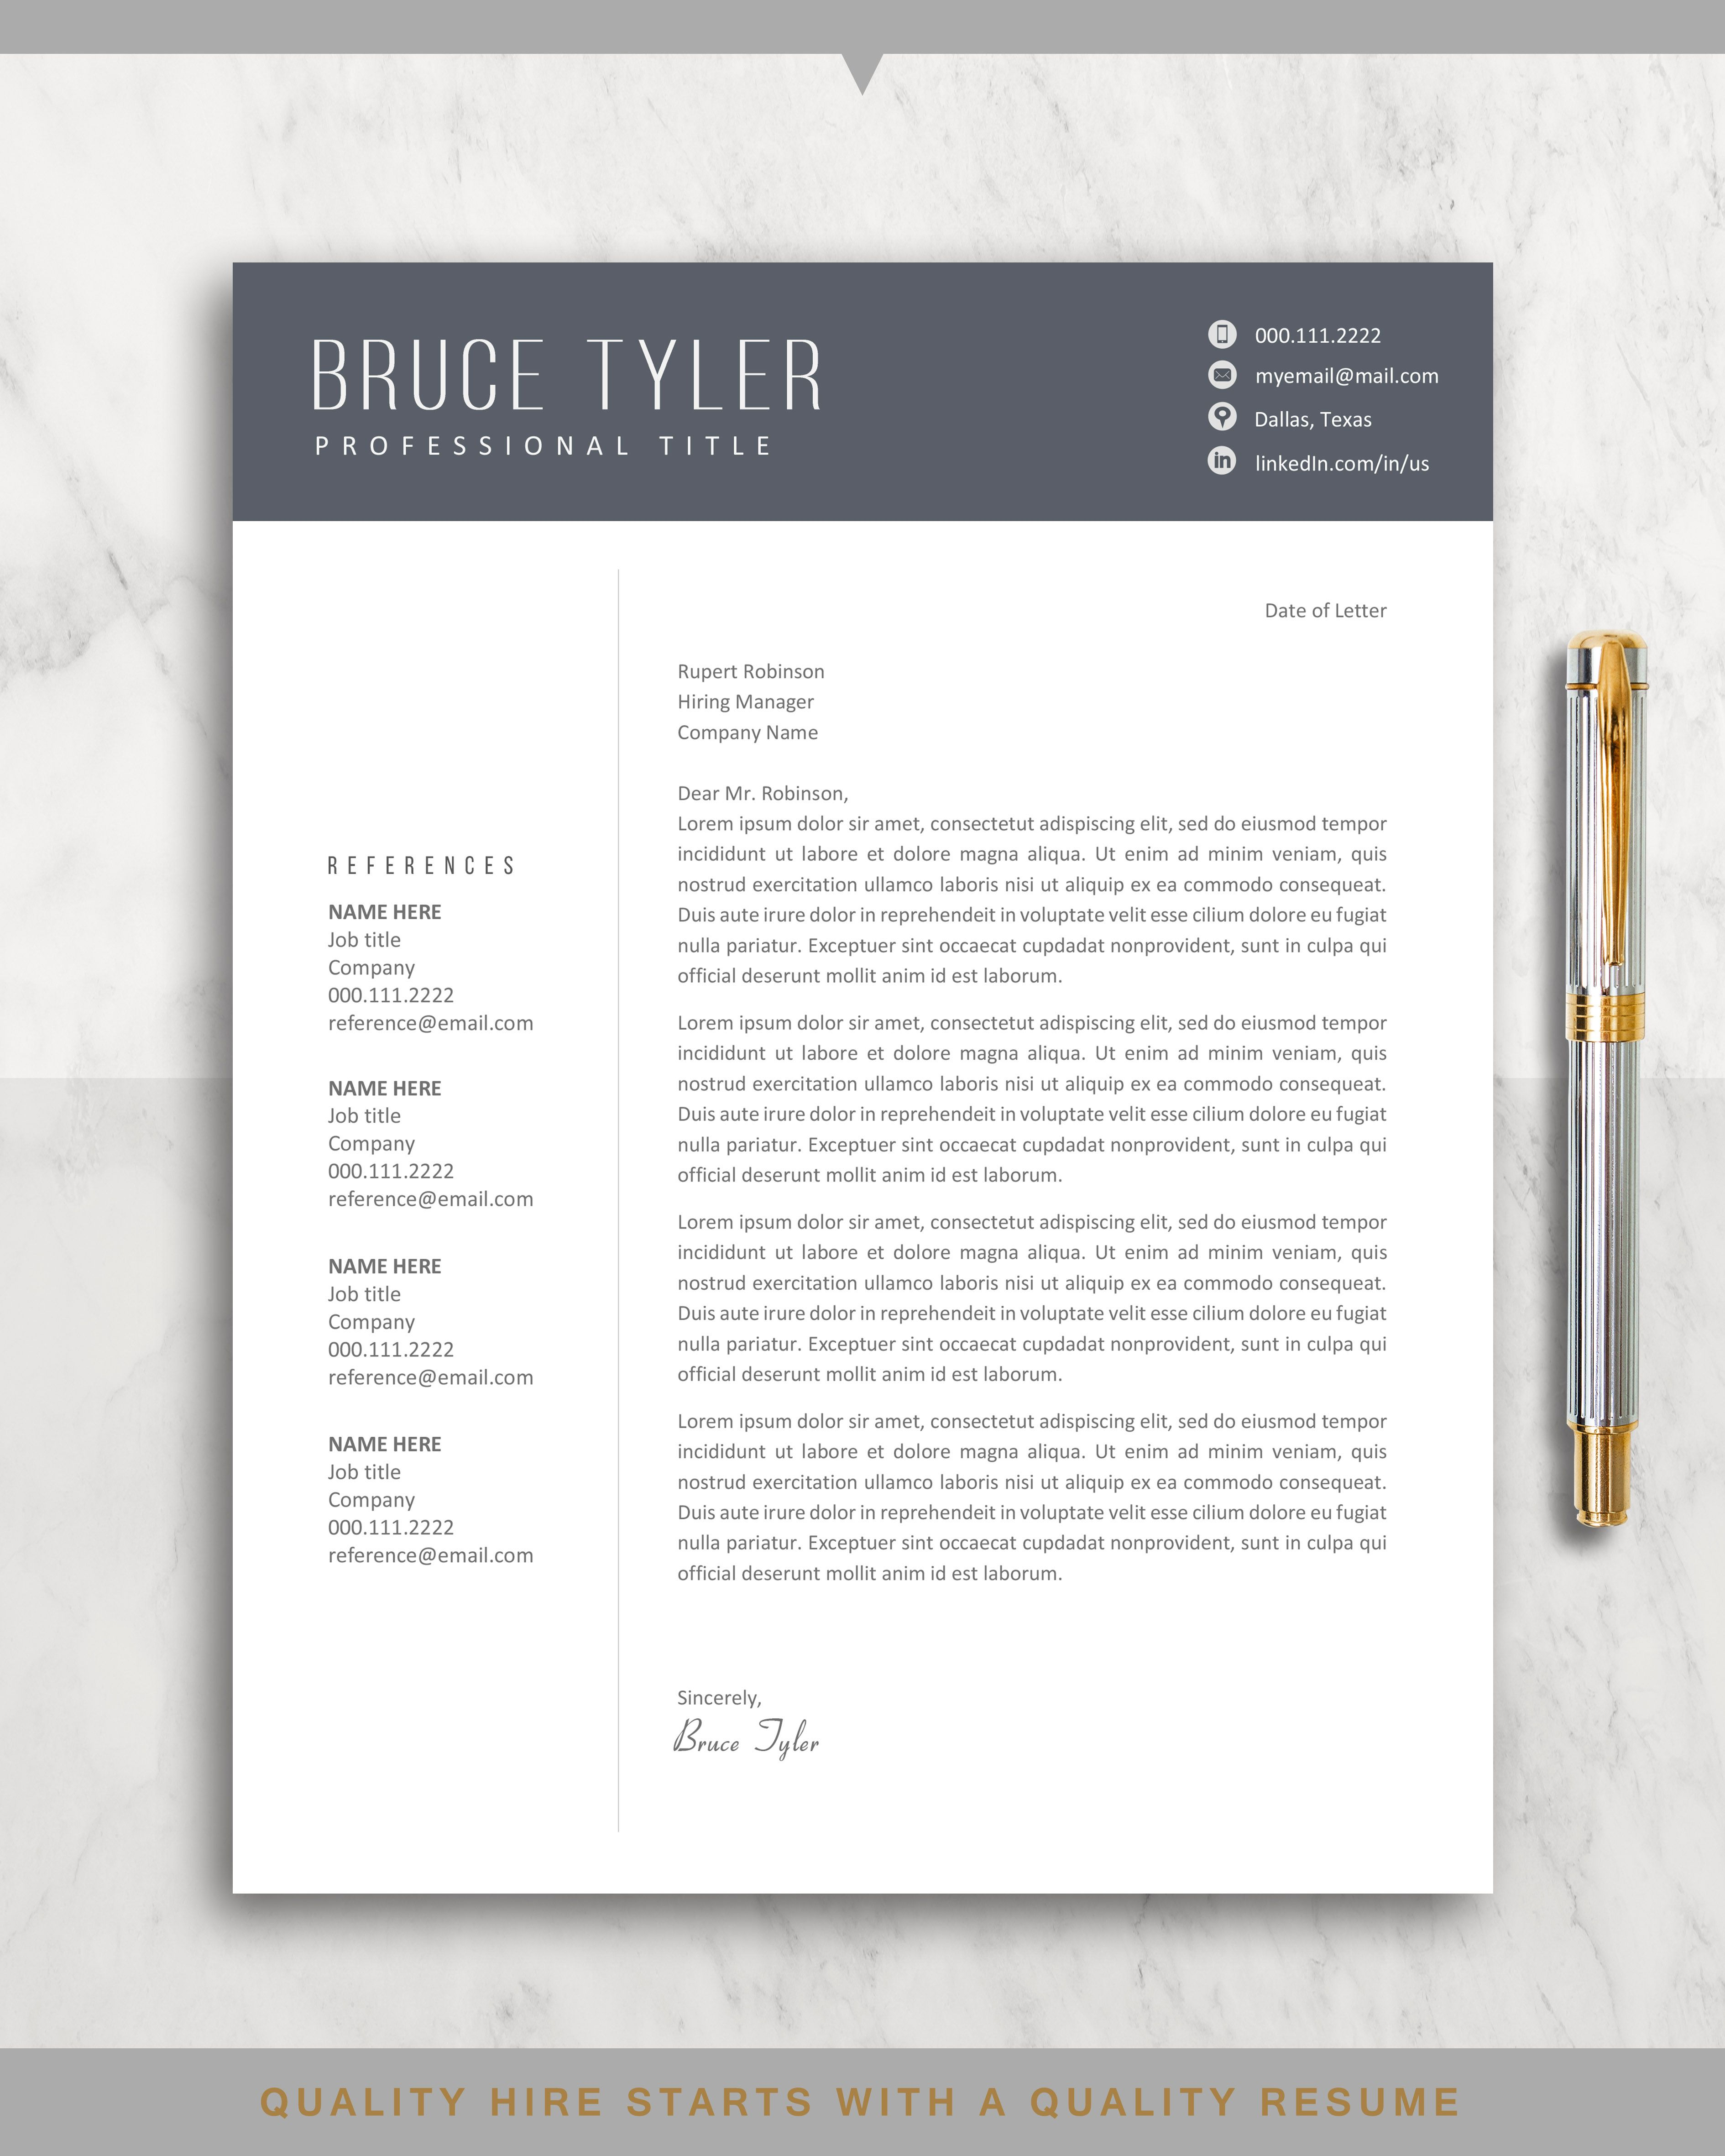 Resume Template Professional Cv Templates Project Manager Etsy Resume Template Resume Template Professional Lettering